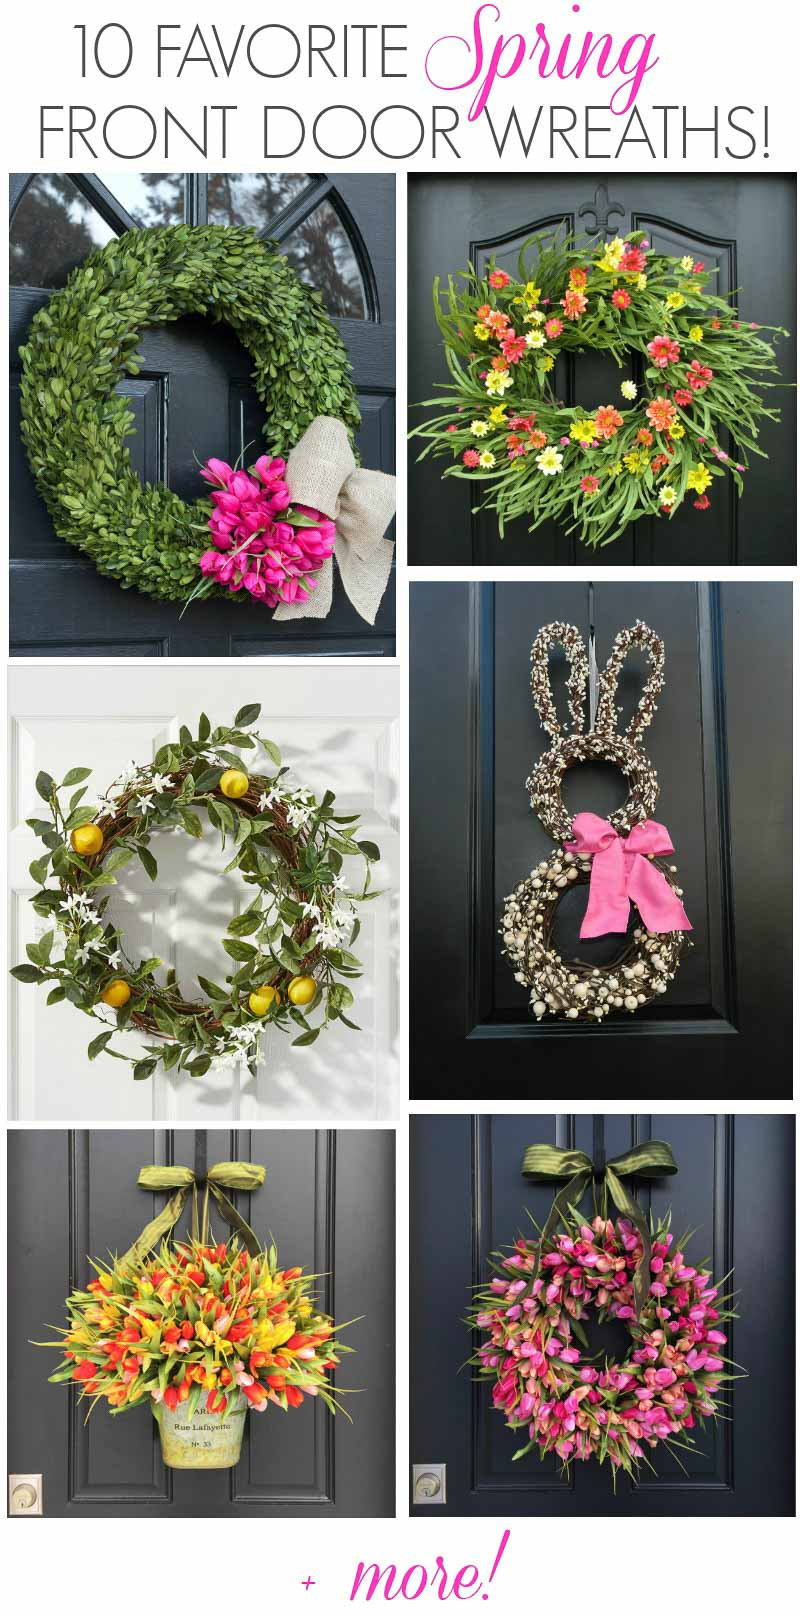 Gorgeous Spring Wreath Ideas For Your Front Door My Favorite Is Number 10